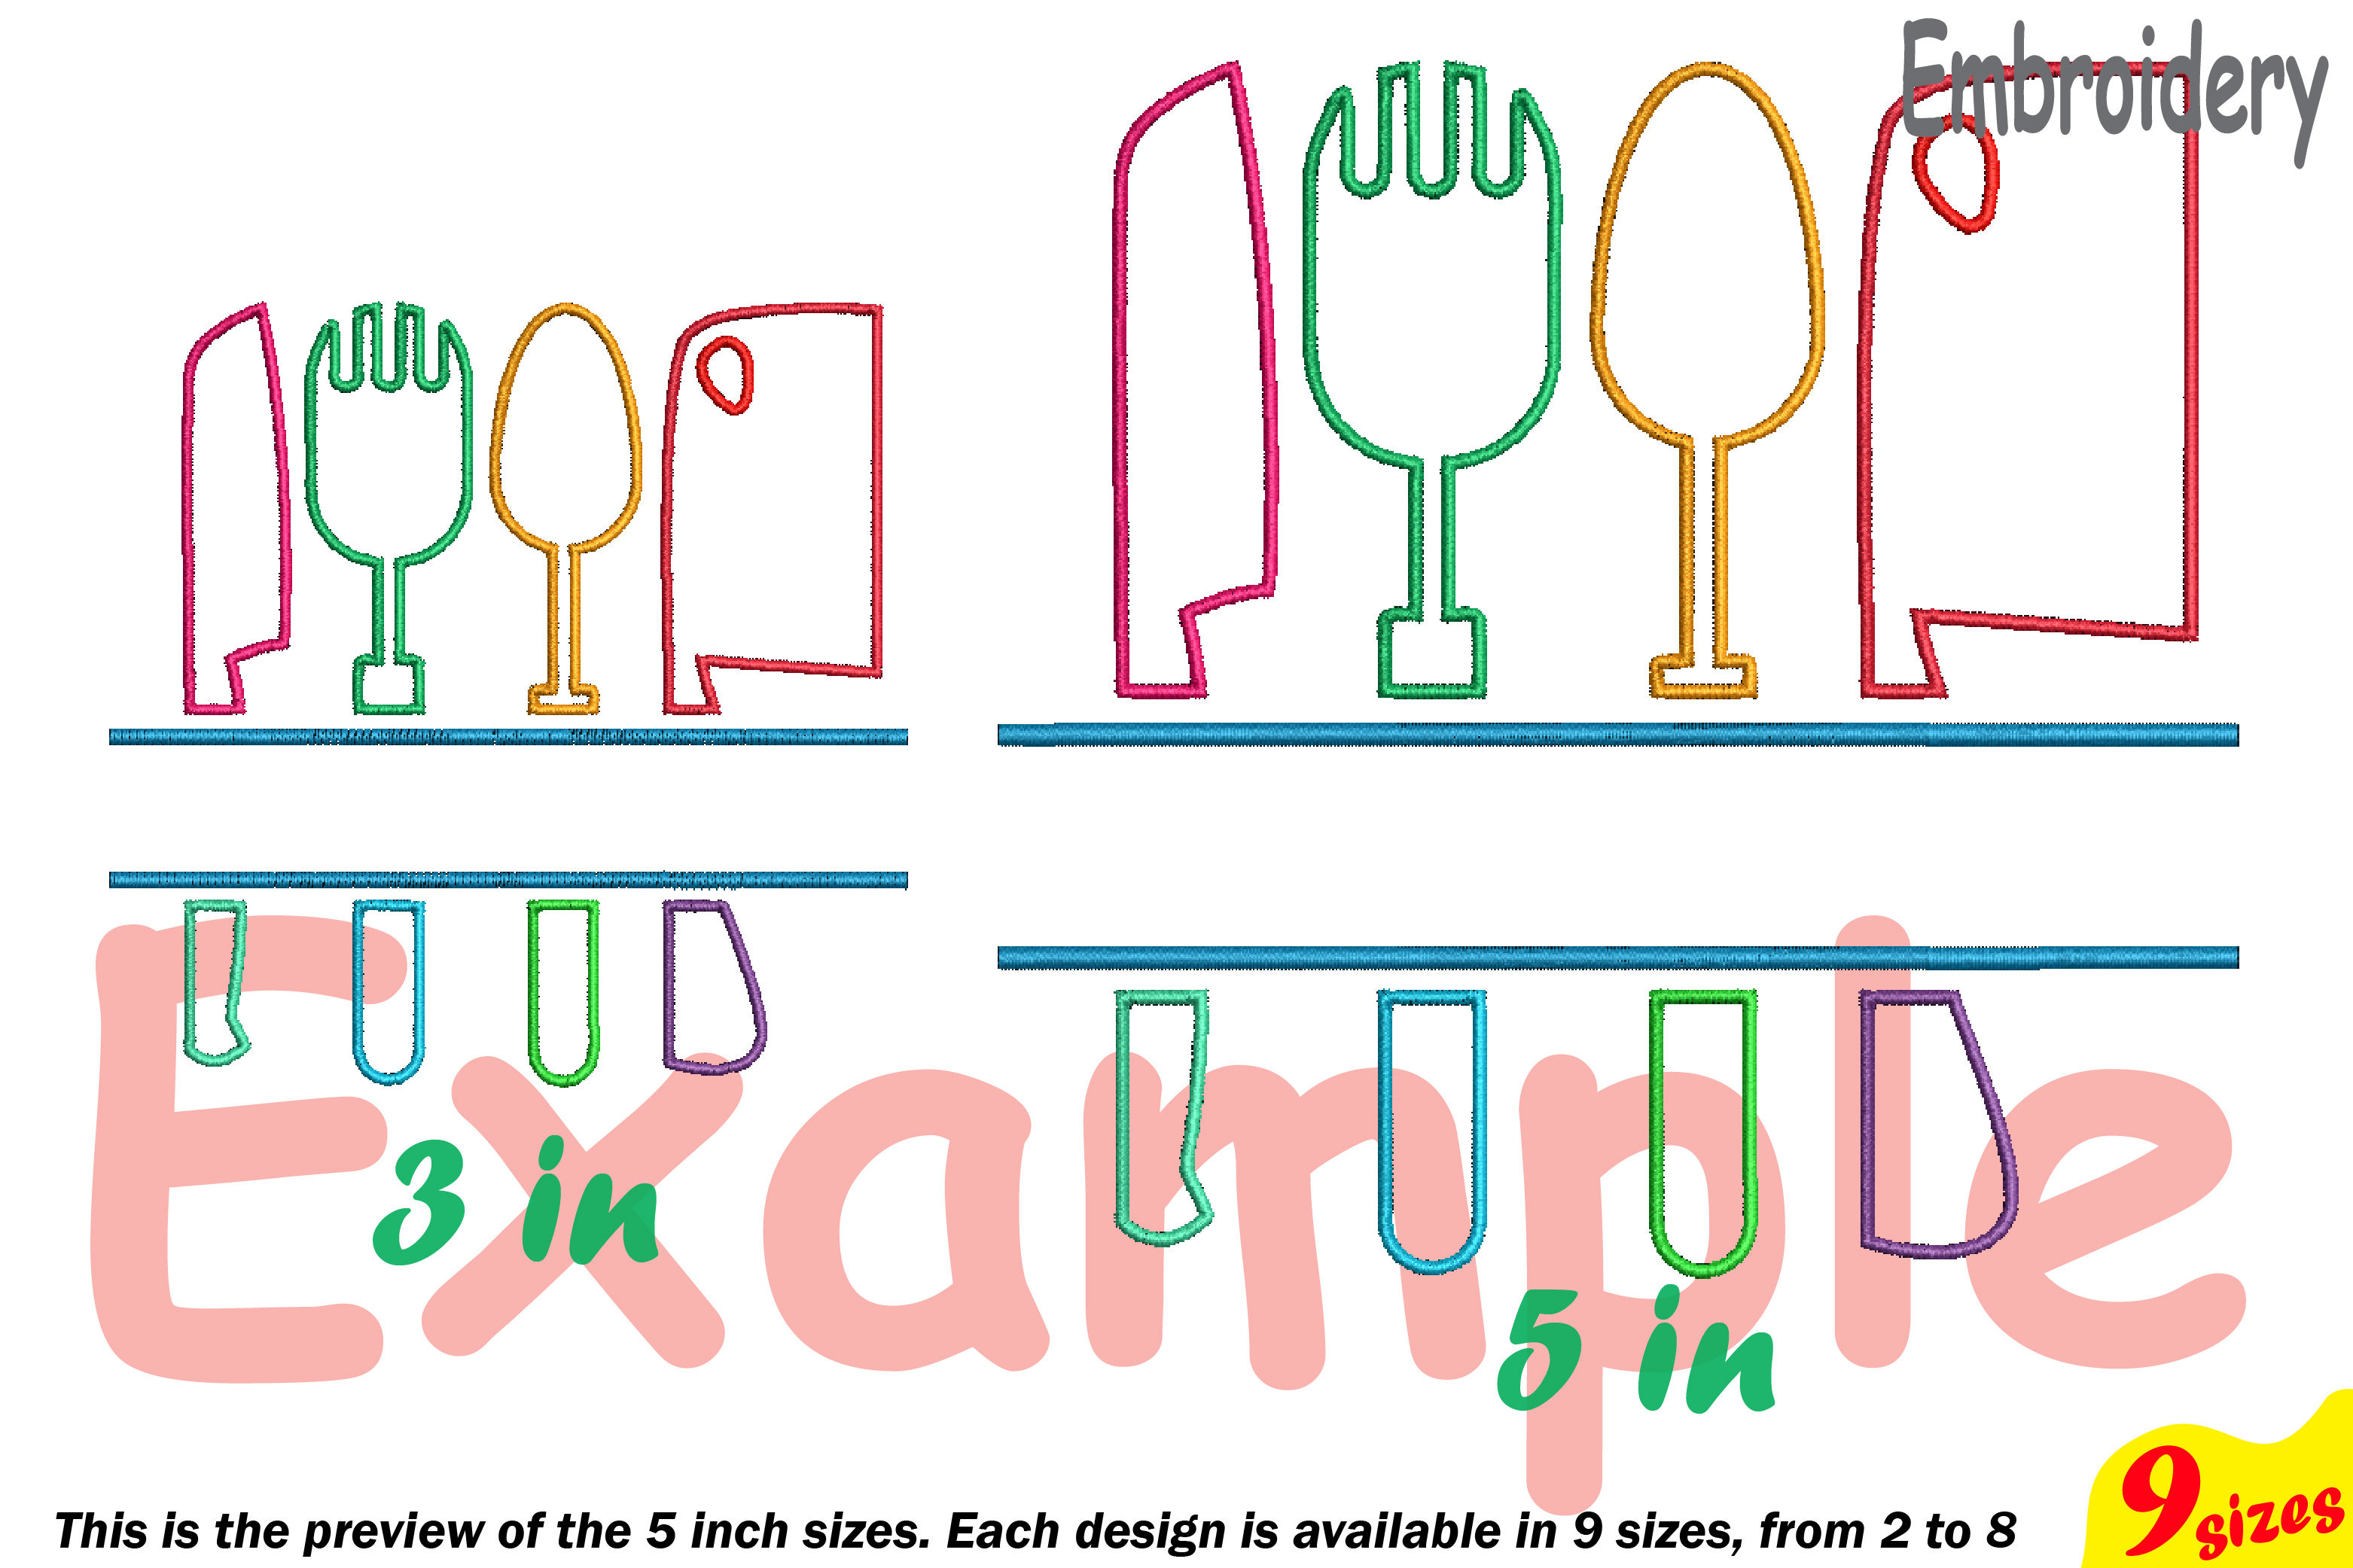 Split Kitchen Embroidery Design Machine Instant Download Commercial Use digital file icon symbol sign Cooking Chef Utensils knife 182b example image 3